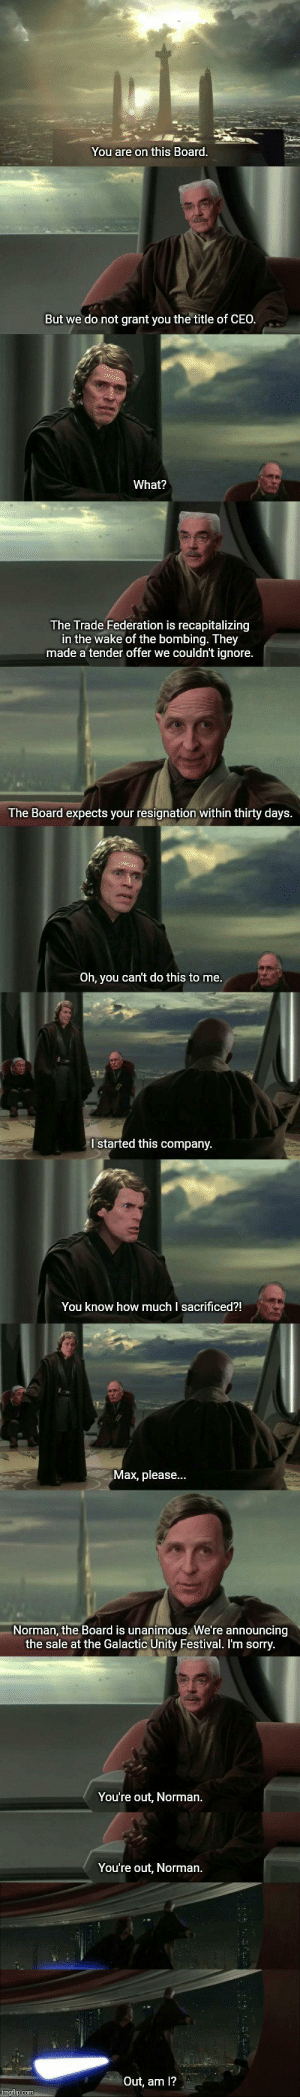 Raimi memes: You are on this Board.  But we do not grant you the title of CEO.  What?  The Trade Federation is recapitalizing  in the wake of the bombing. They  made a tender offer we couldn't ignore.  The Board expects your resignation within thirty days.  Oh, you can't do this to me.  I started this company.  You know how much I sacrificed?!  Max, please...  Norman, the Board is unanimous. We're announcing  the sale at the Galactic Unity Festival. I'm sorry.  You're out, Norman.  You're out, Norman.  Out, am 1?  imgflip.com Raimi memes